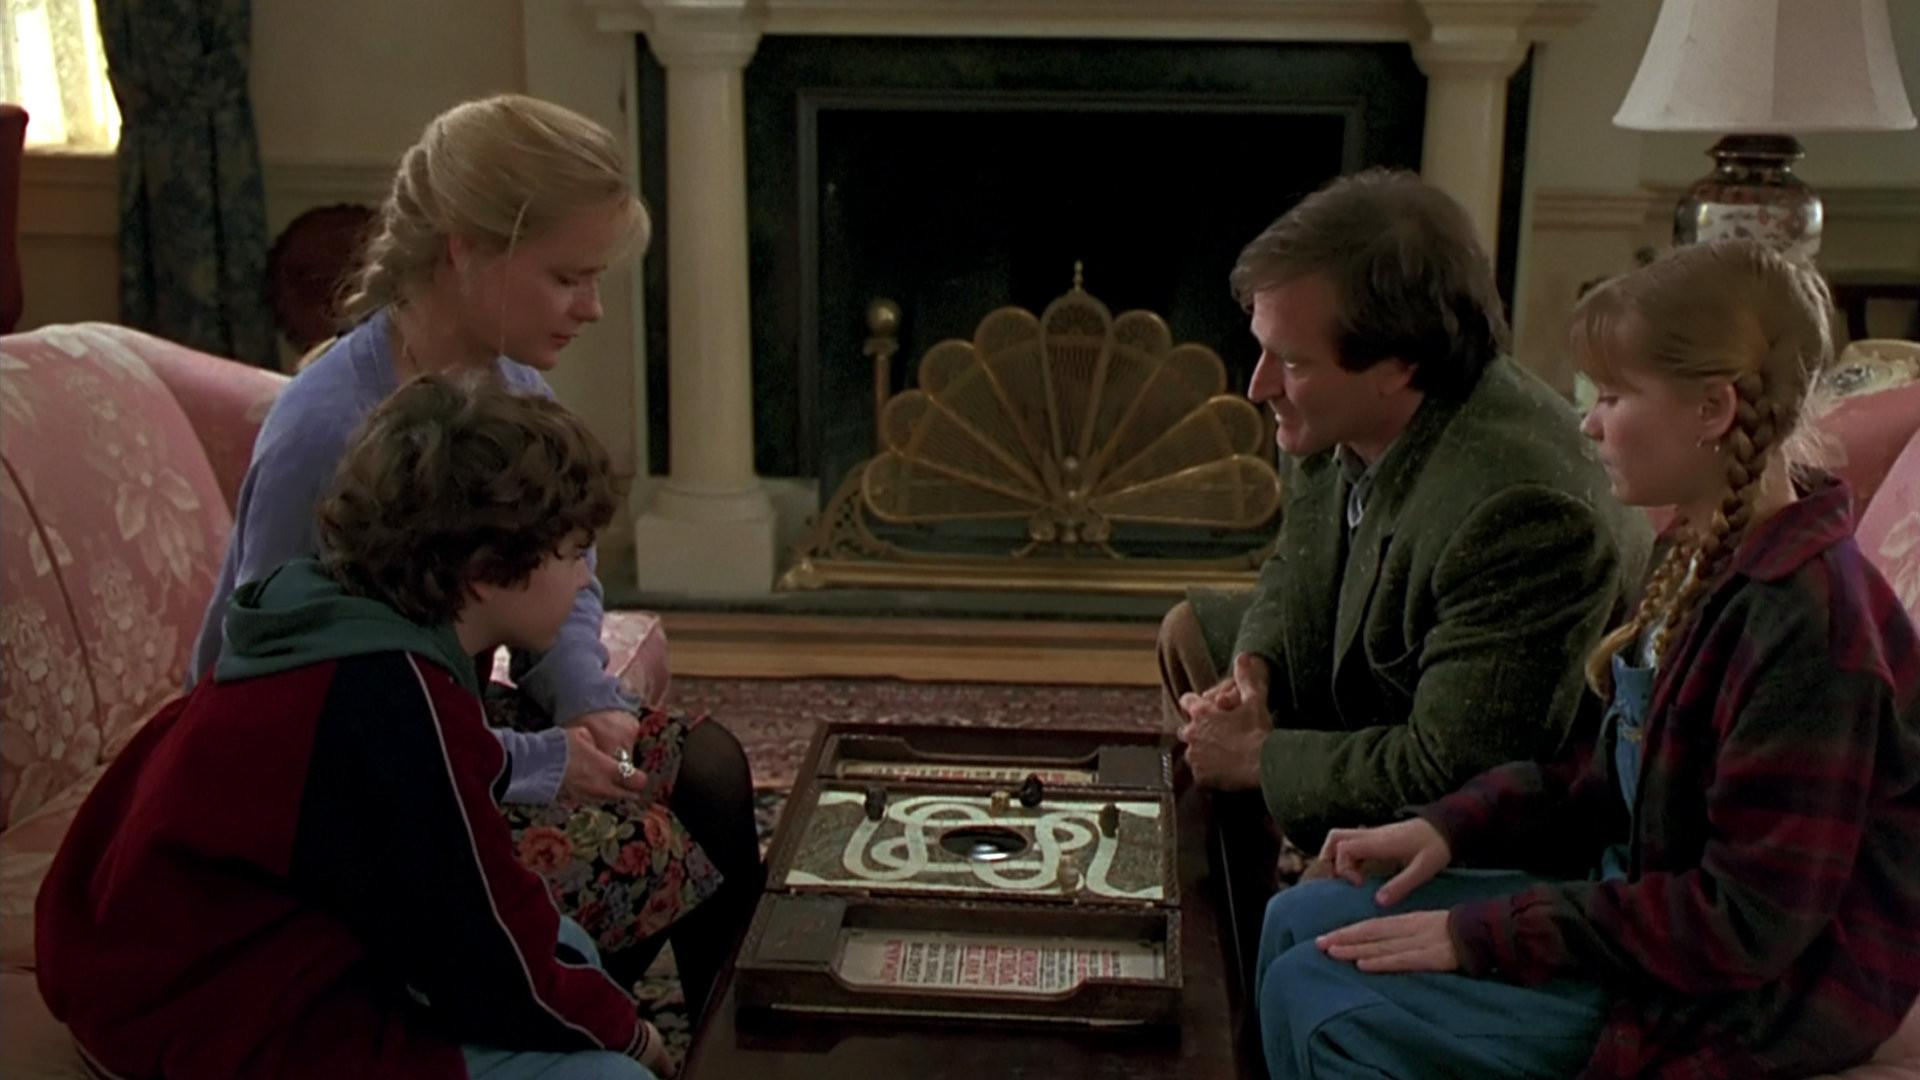 Sitting down to play the boardgame - Bradley Pierce, Bonnie Hunt, Robin Williams, Kirsten Dunst in Jumanji (1995)